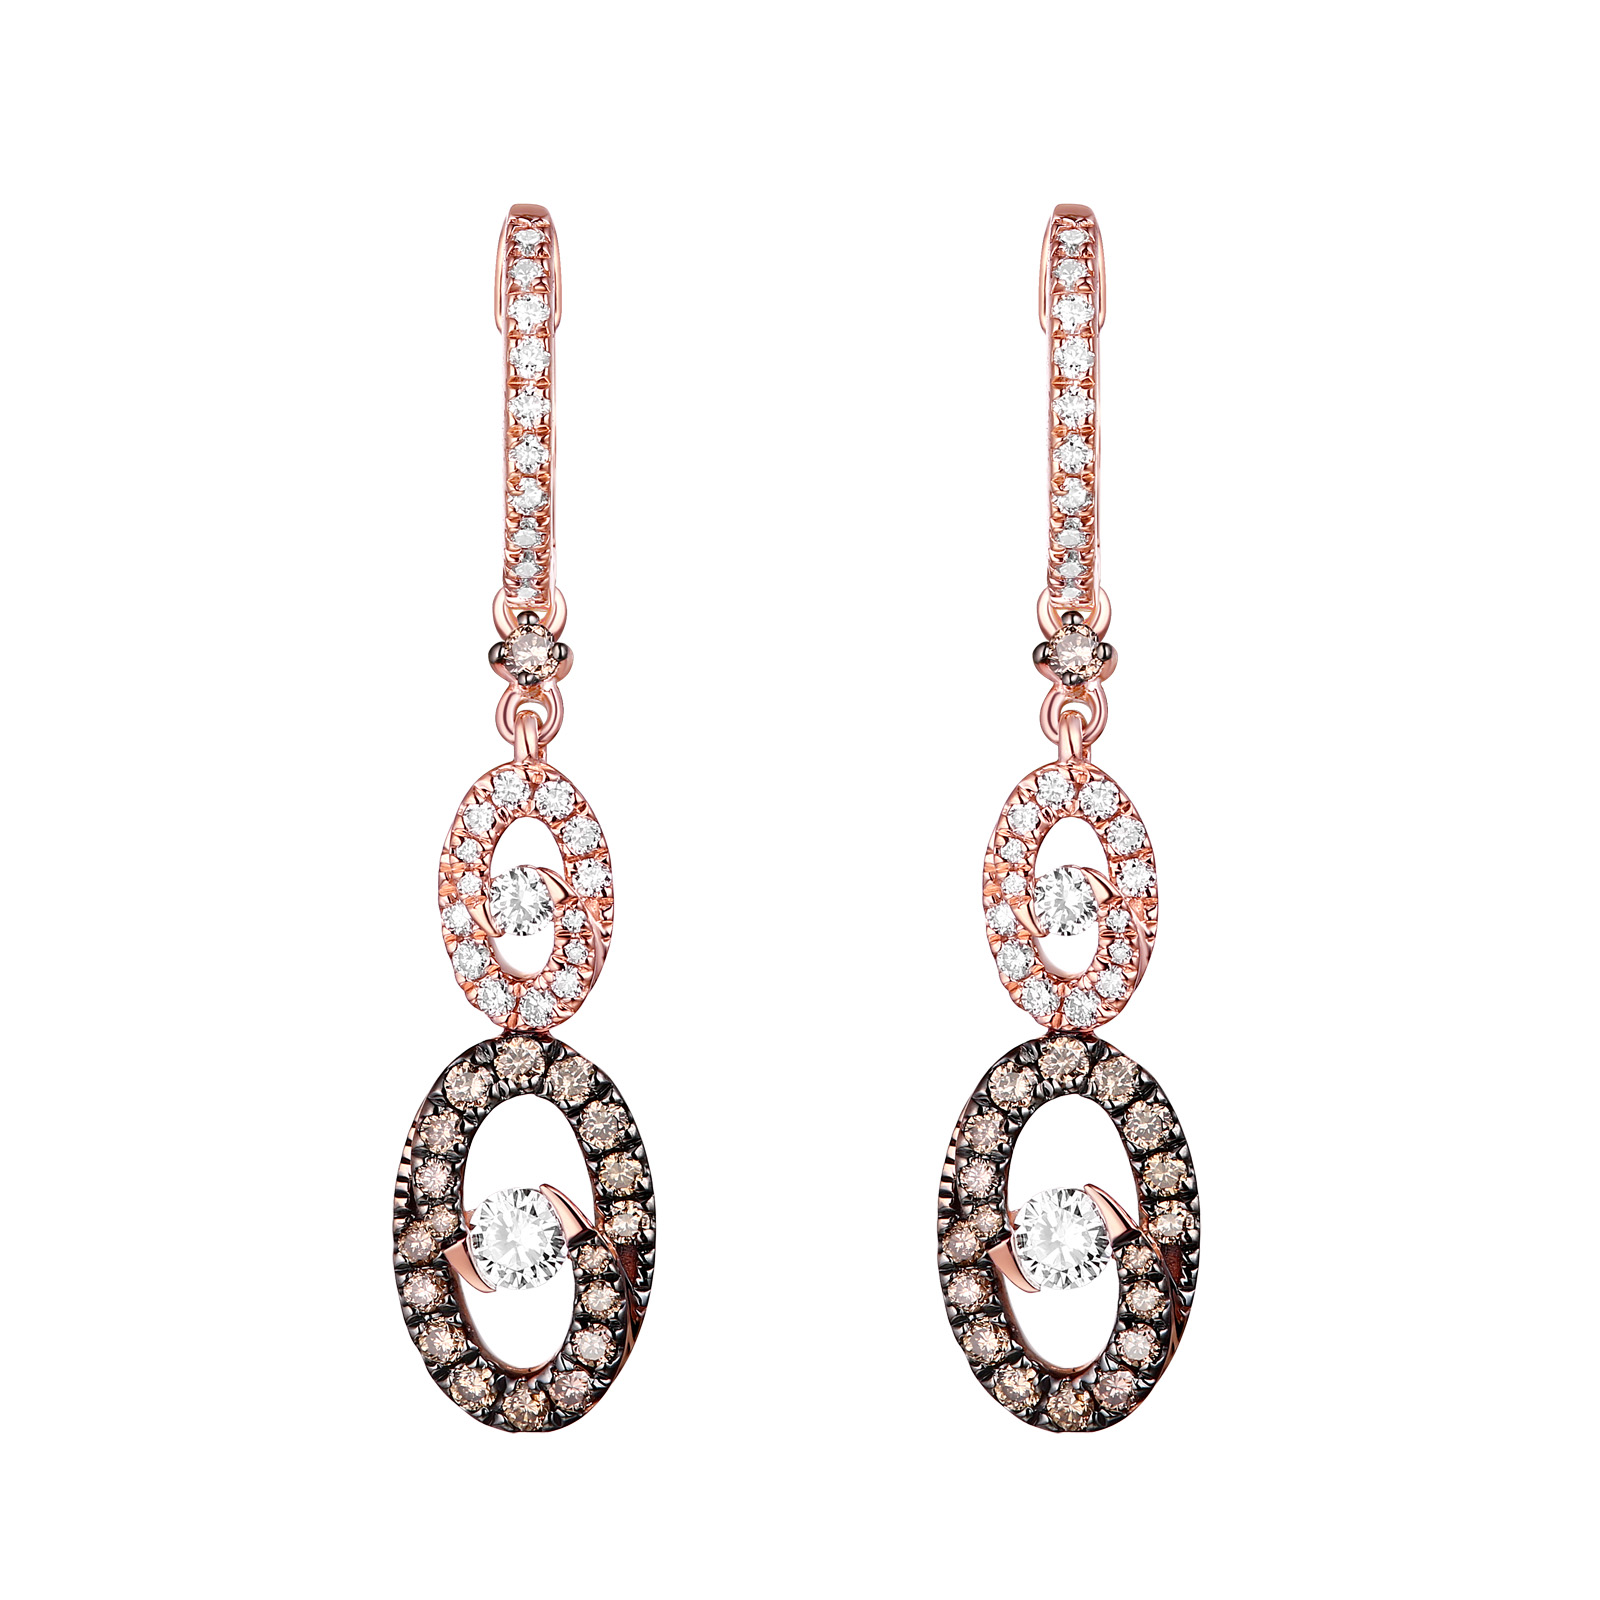 E26577WBR- 14K Rose Gold Diamond Earrings , 0.82 TCW